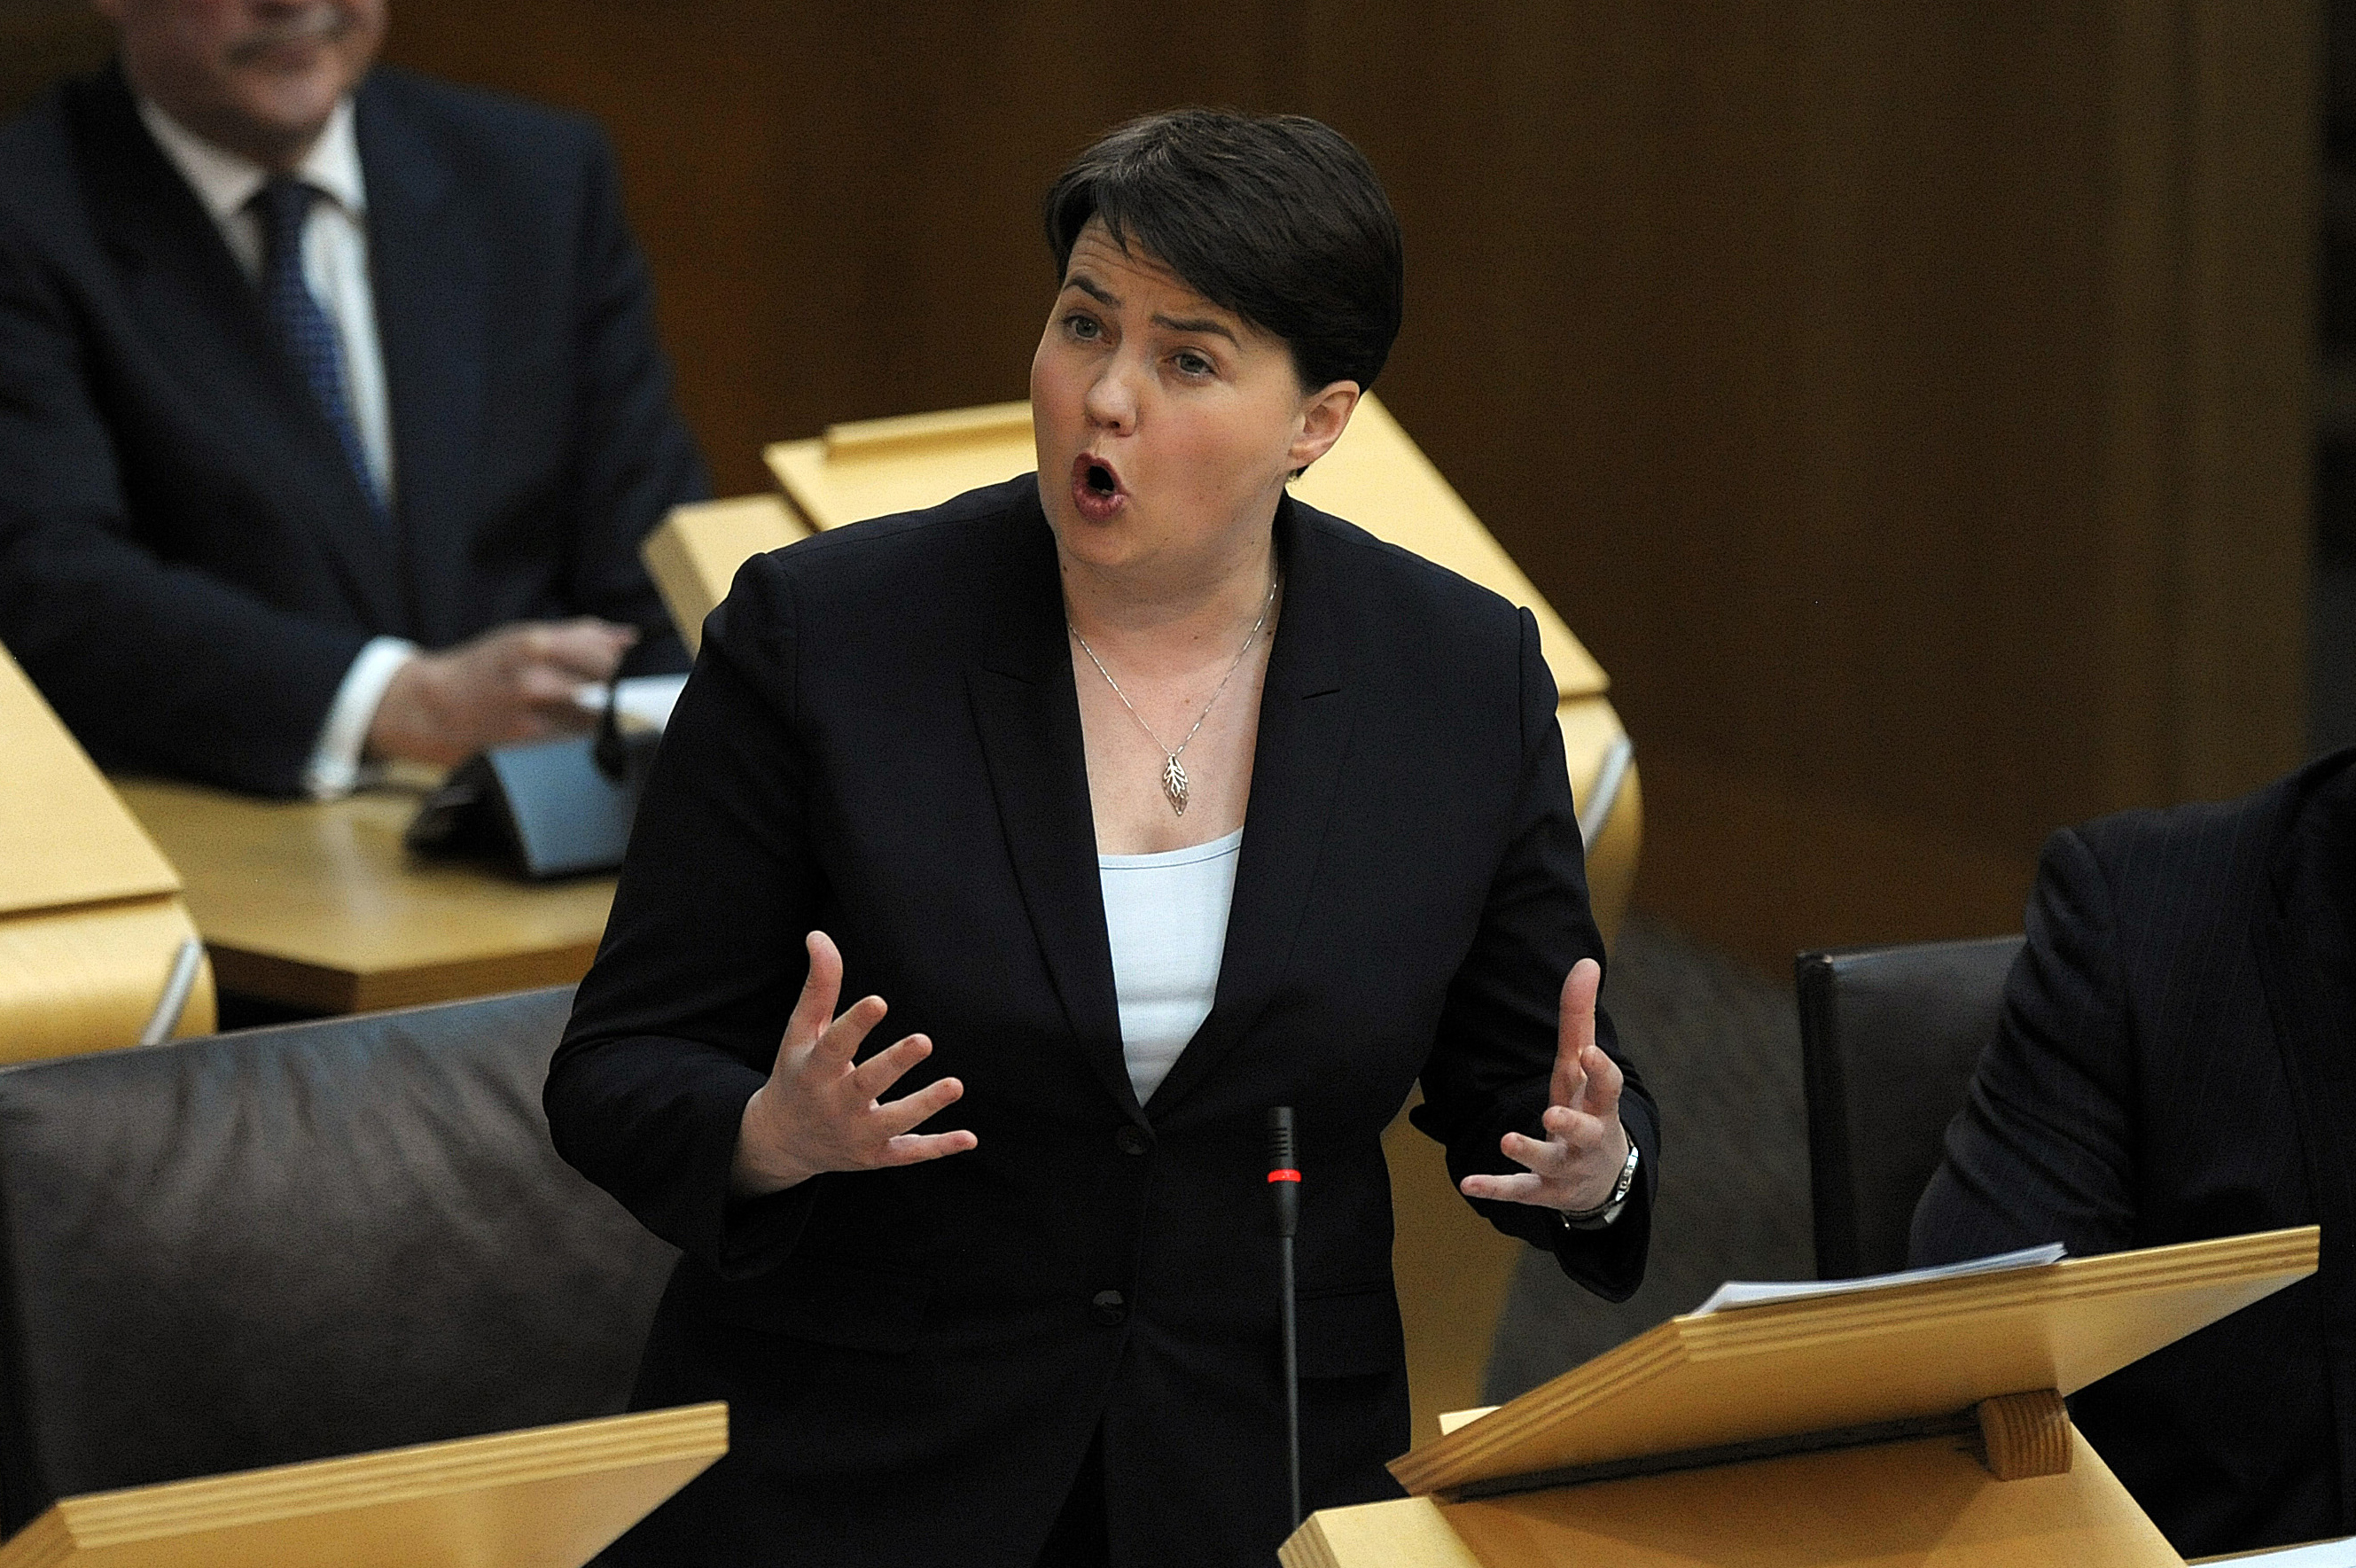 Leader of the Scottish Conservative Party Ruth Davidson (Andy Buchanan/WPA Pool /Getty Images)